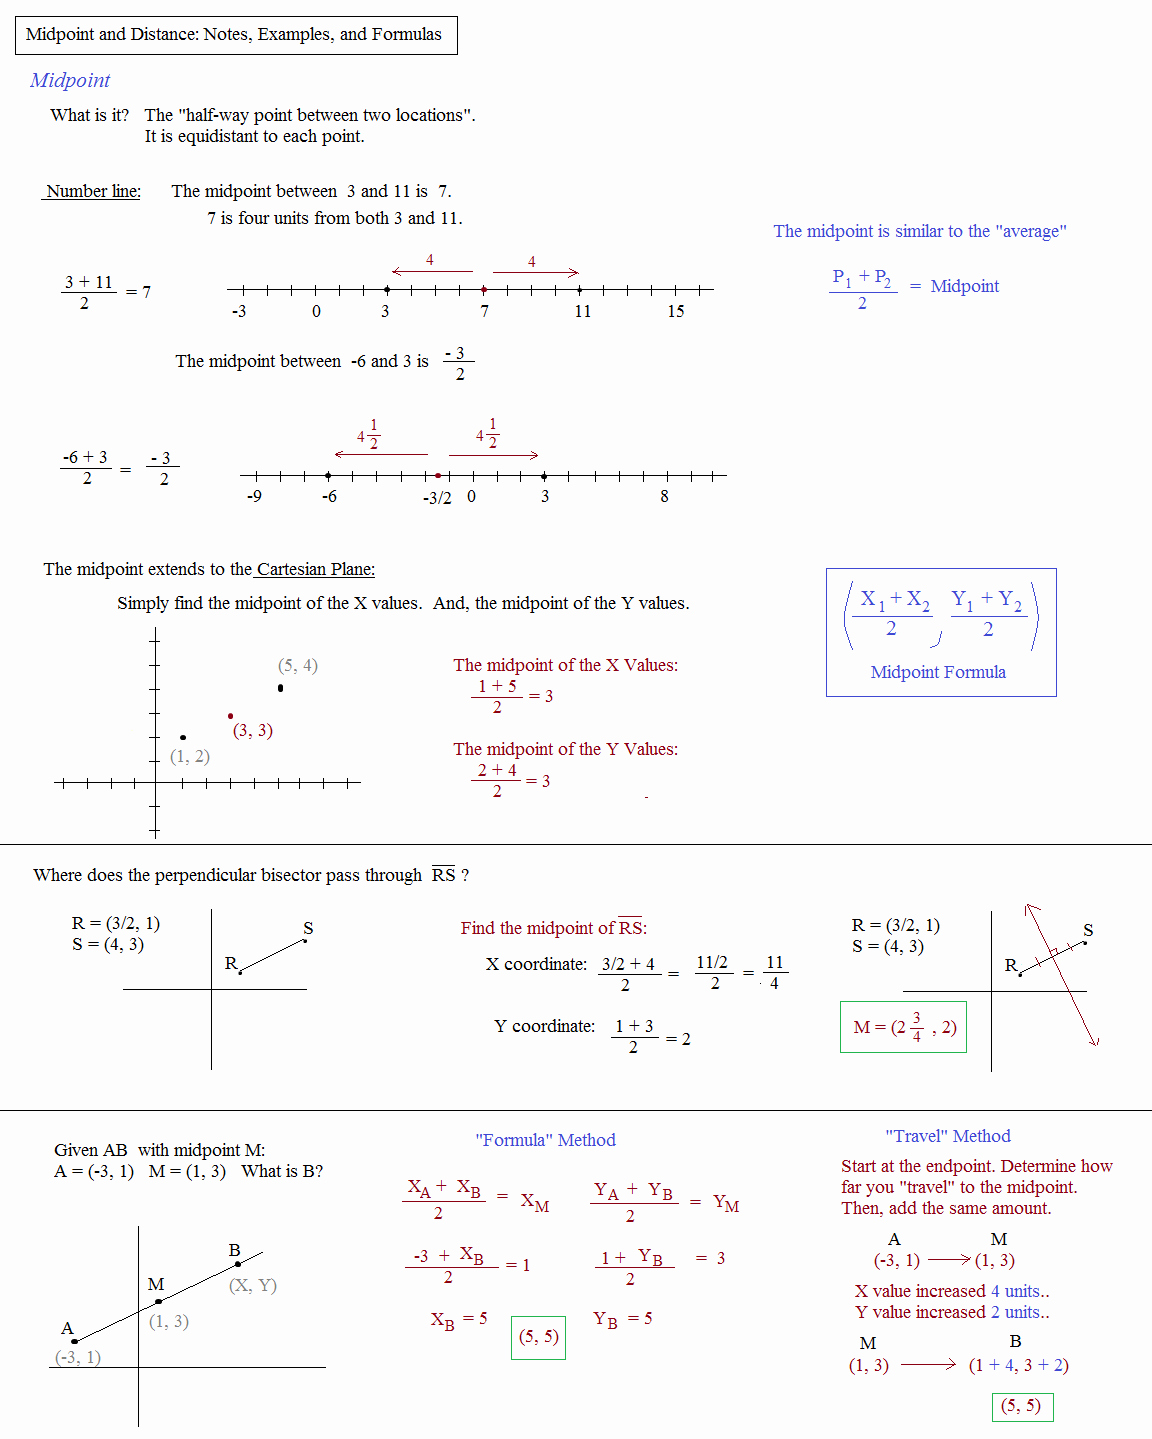 The Midpoint formula Worksheet Luxury Math Plane Midpoint and Distance